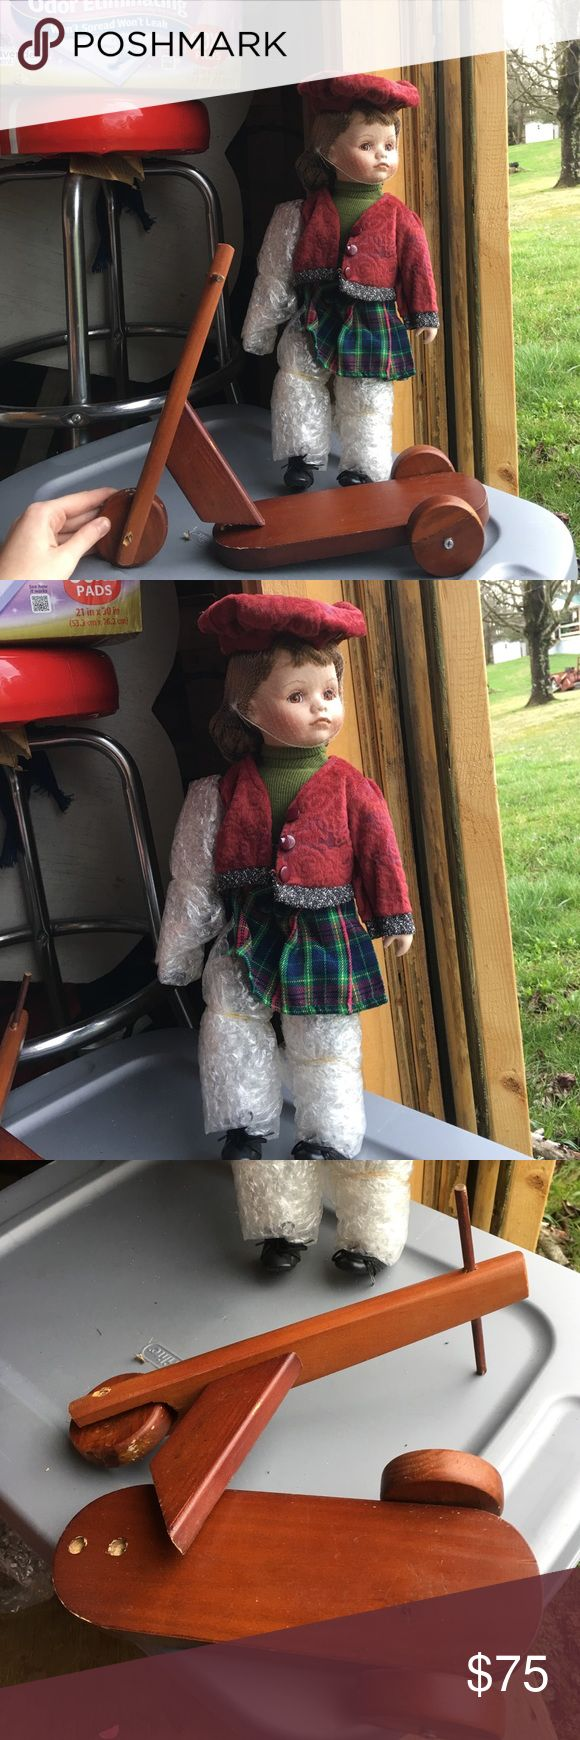 American girl Brand new, may have small stains needs nails for scooter Other